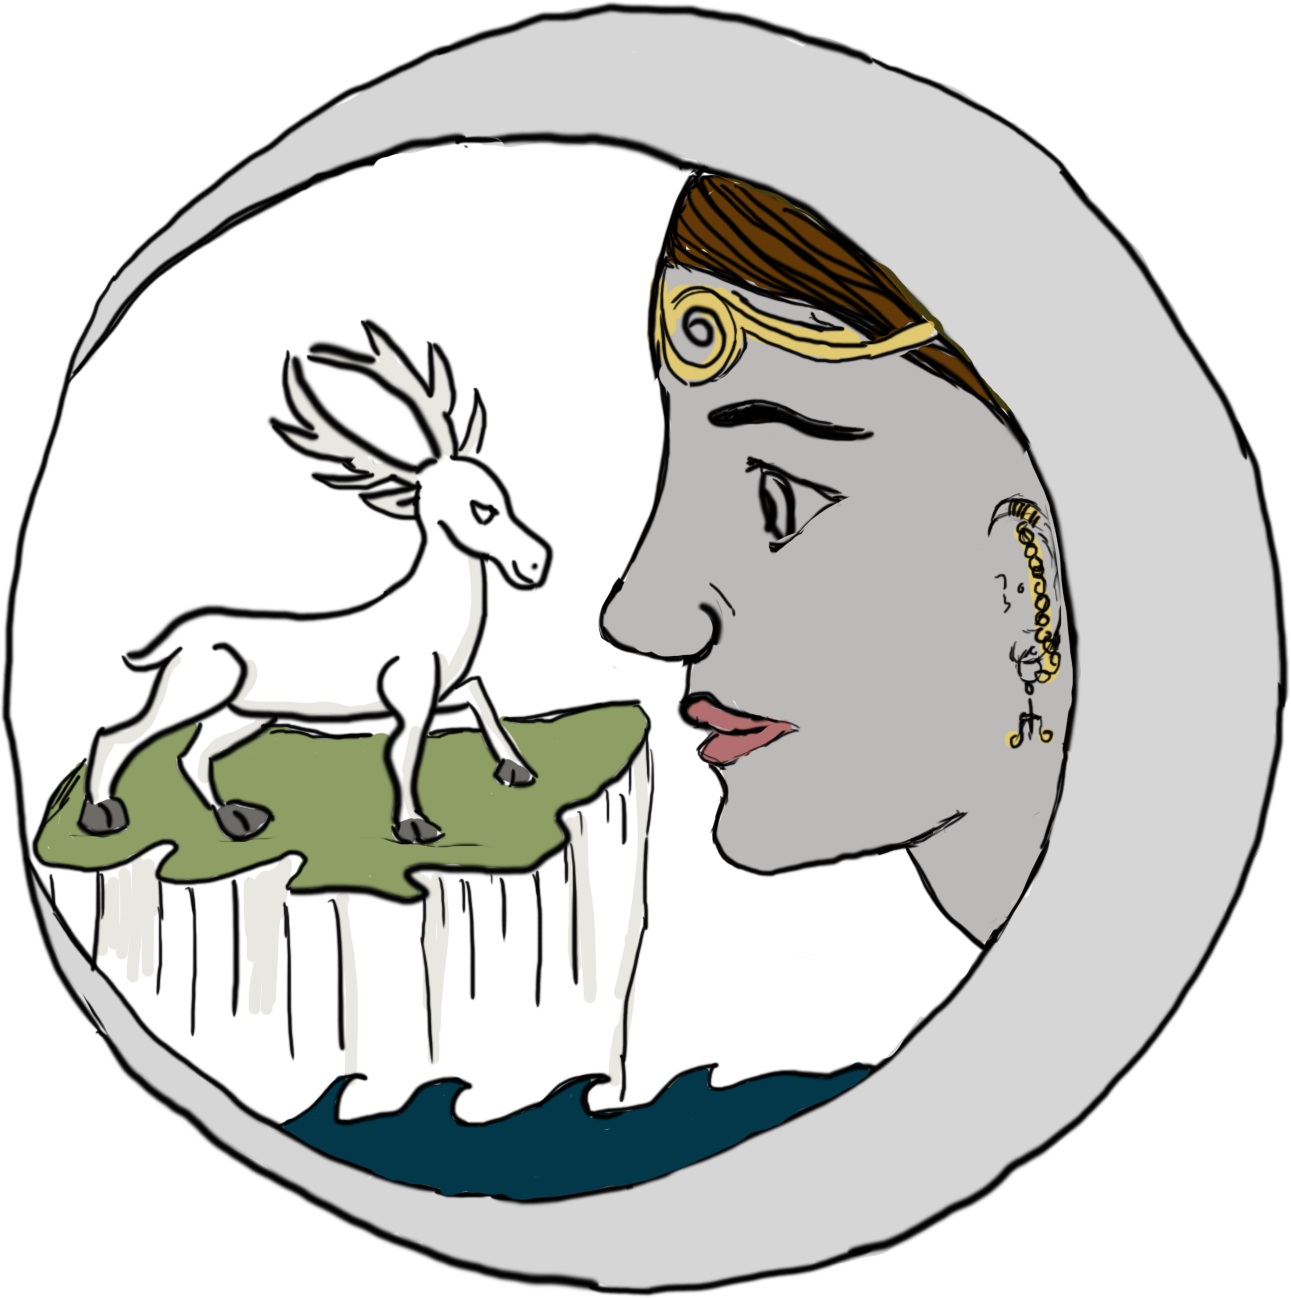 The Stag (Hart) Moon (July Full Moon)